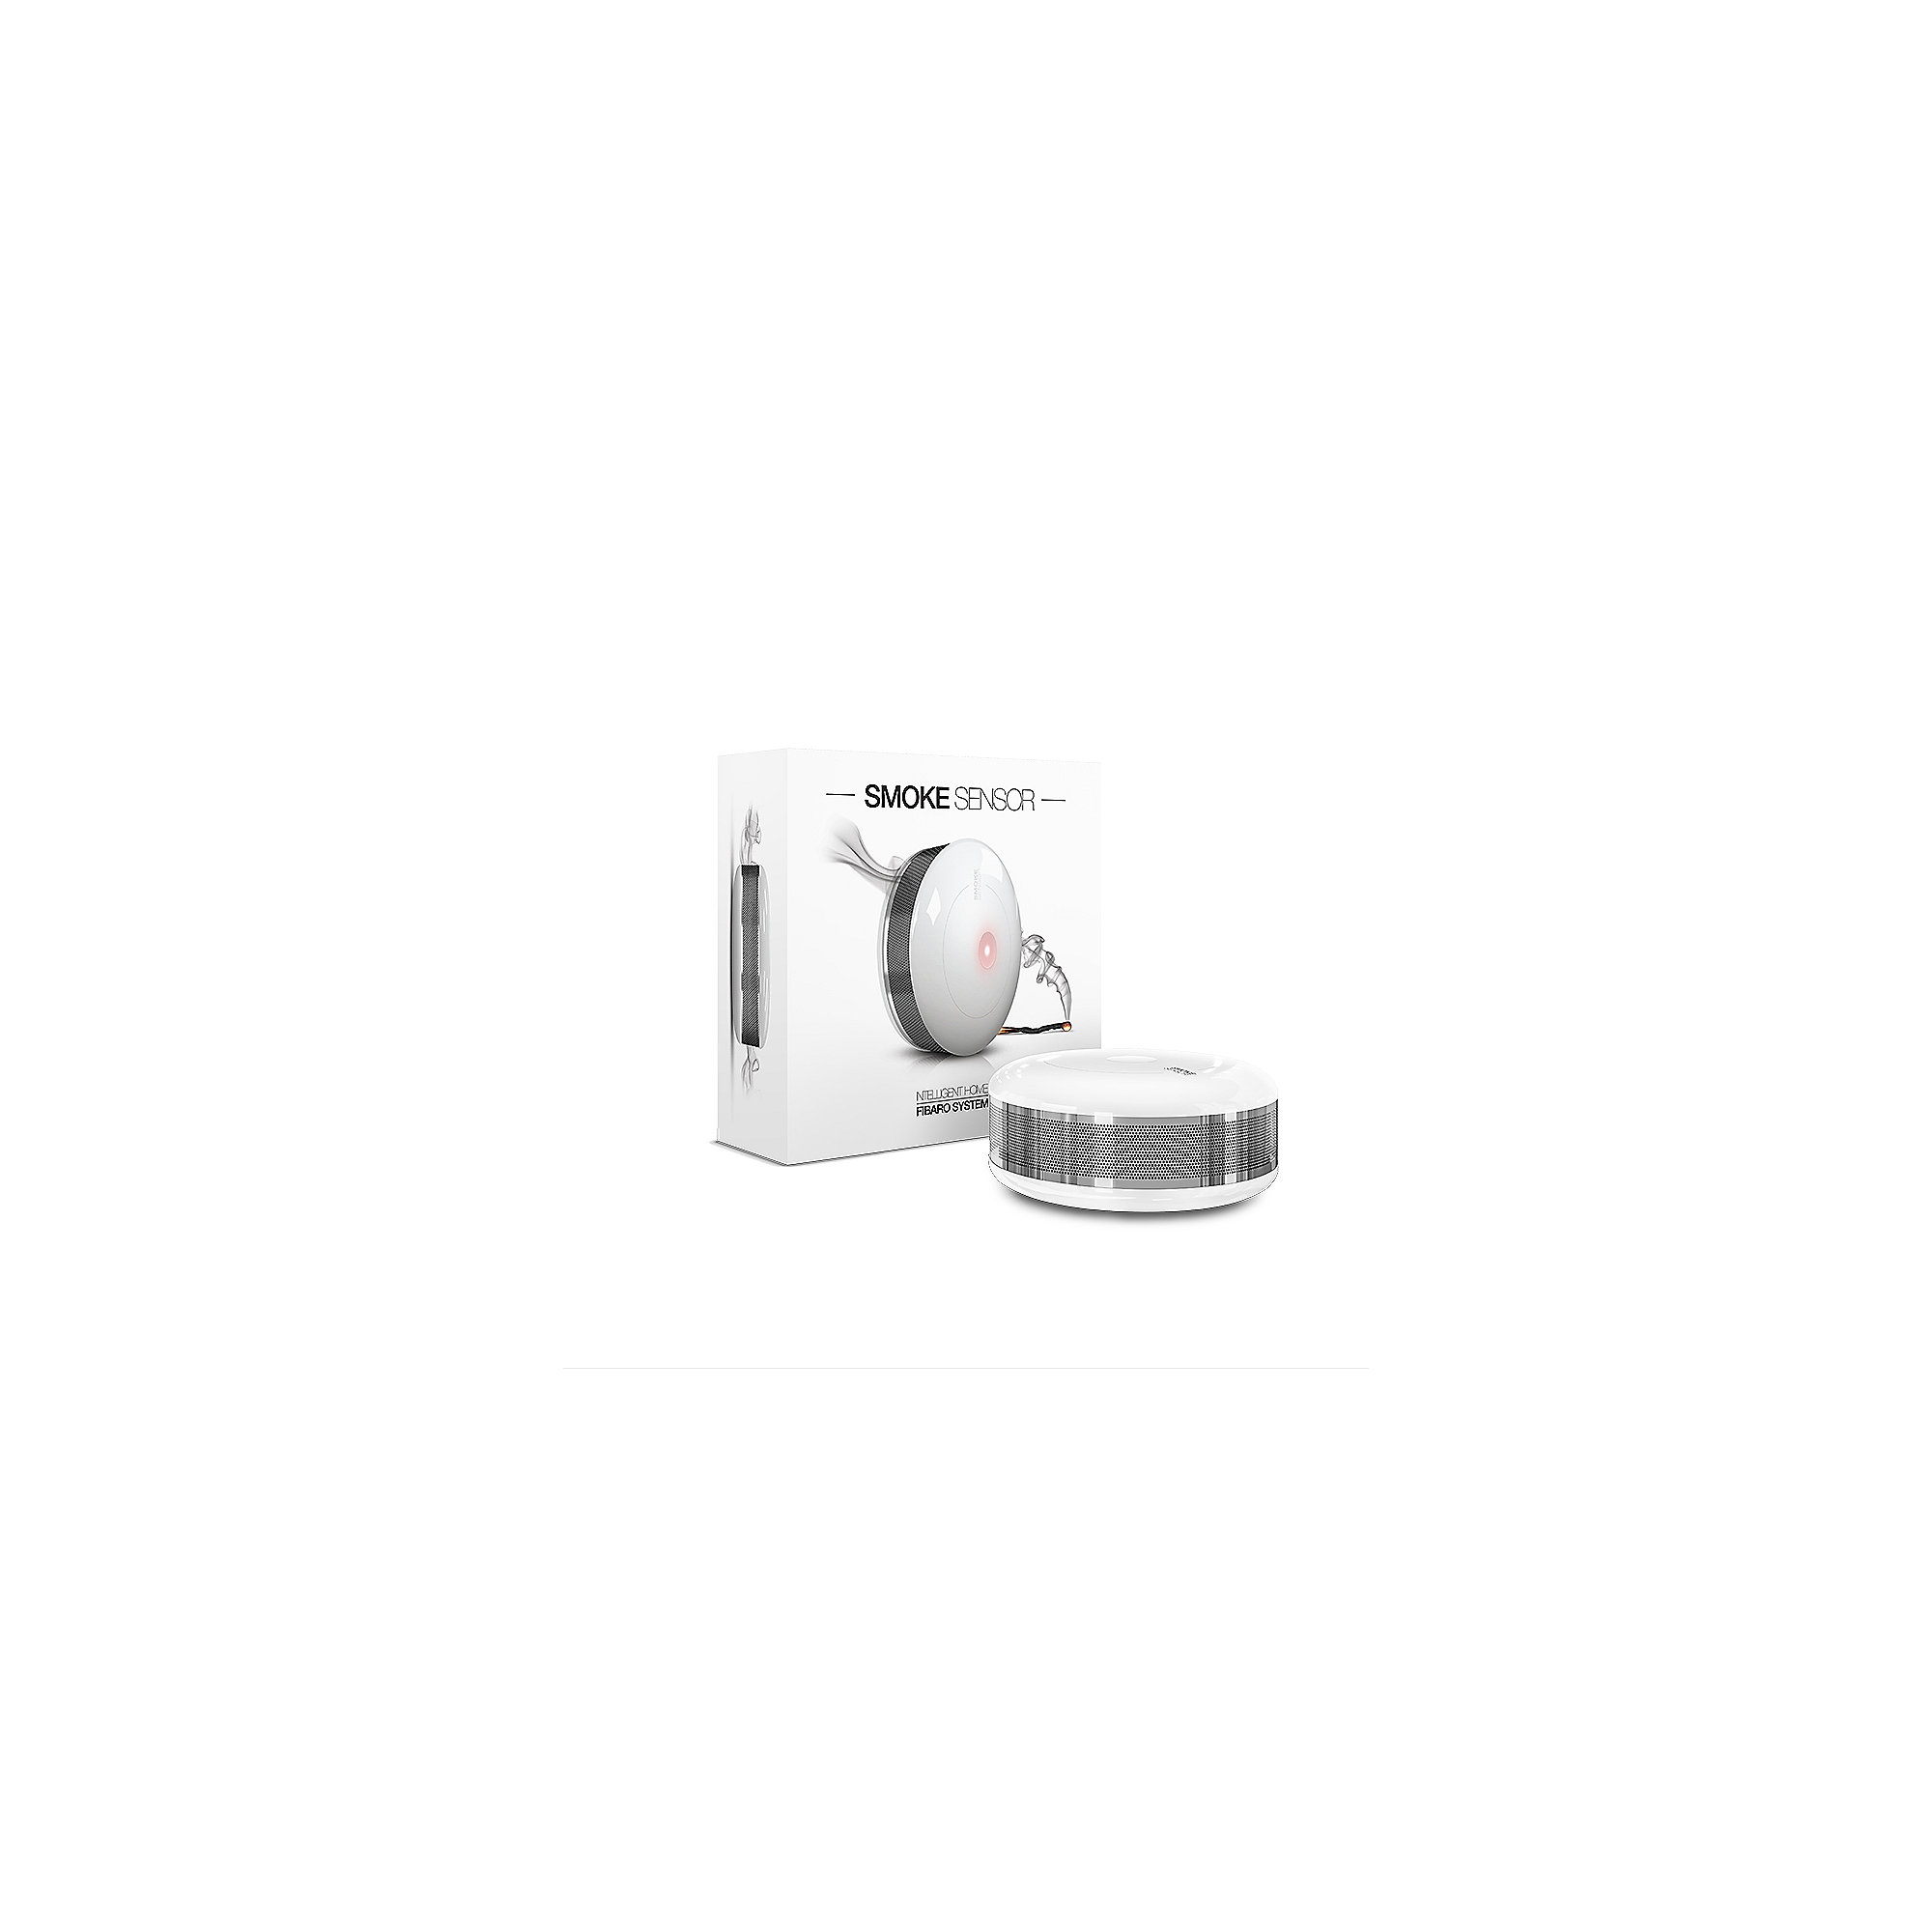 Fibaro Rauchwarnmelder - Z-Wave 2015 3er Bundle